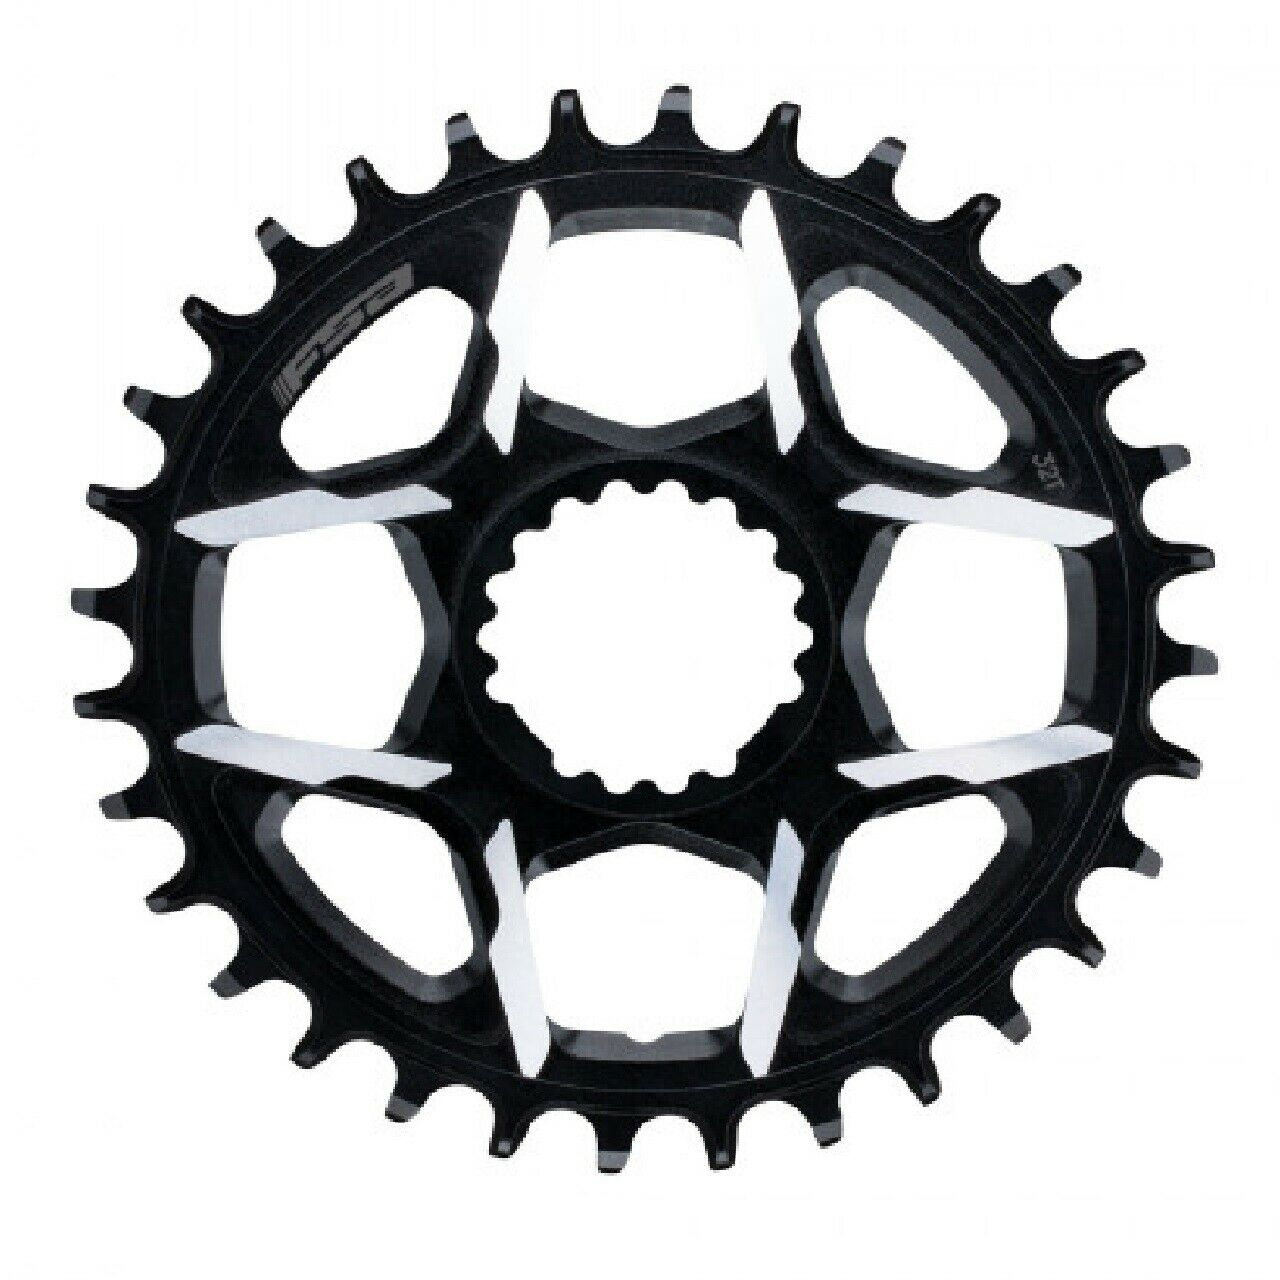 FSA K-Force Direct Mount (DM) Megatooth ABS Chainring 38T 1 x 11